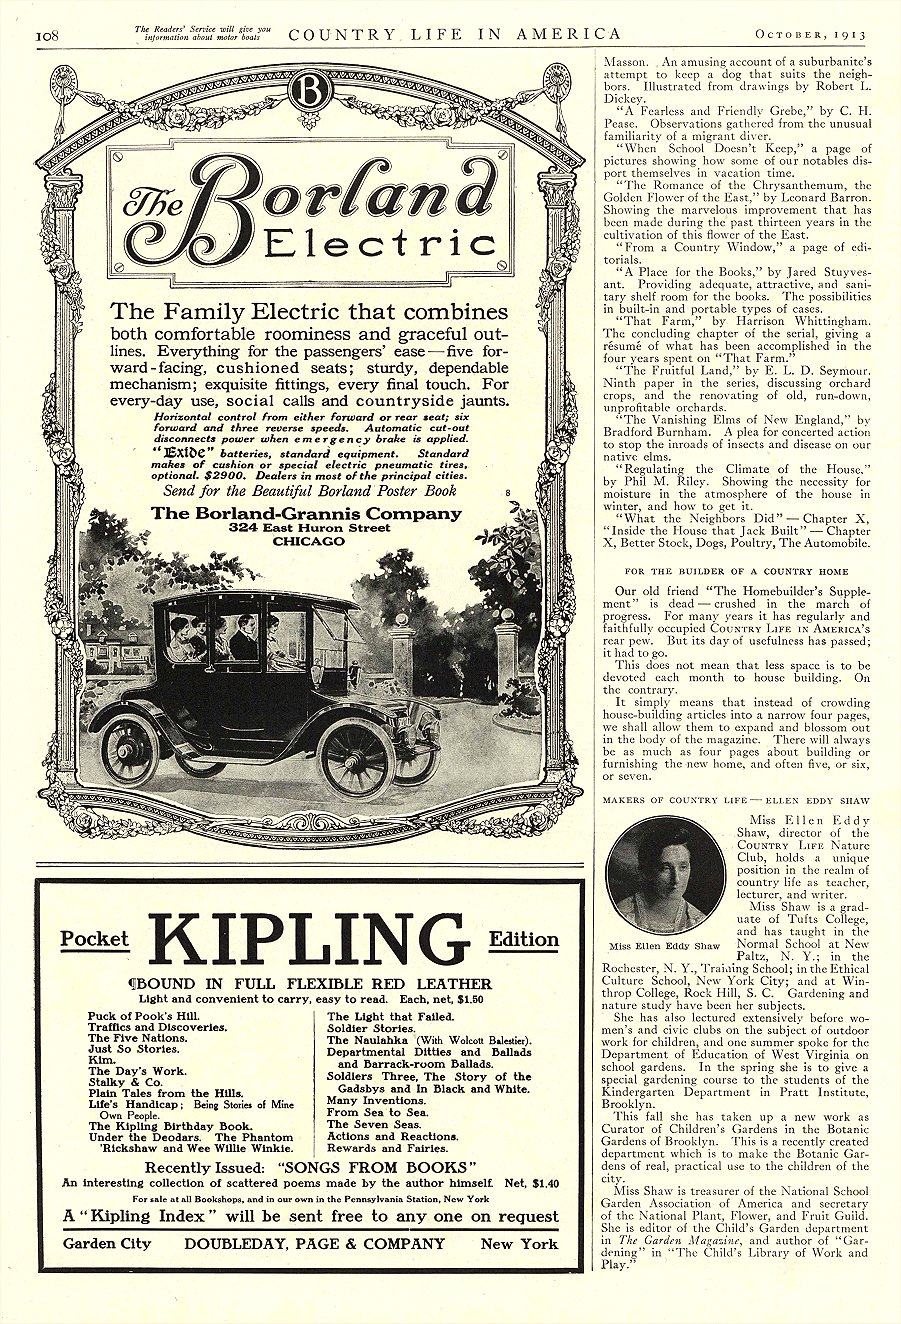 1913 10 BORLAND Electric The Family Electric that combines The Borland-Grannis Co. Chicago, ILL COUNTRY LIFE IN AMERICA October 1913 9.75″x14″ page 108